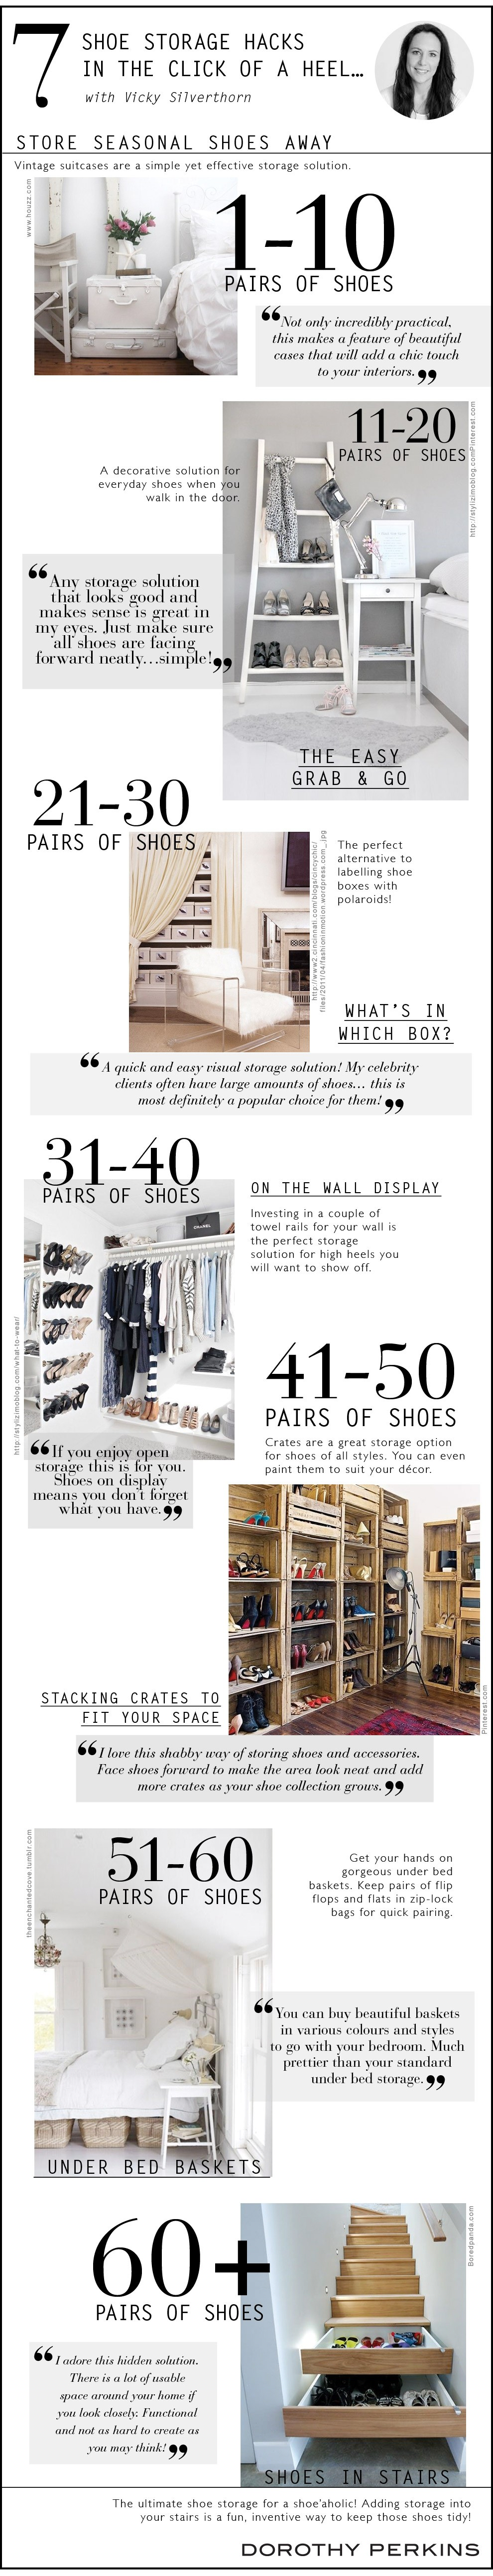 UK-Dorothy-Perkins-Shoes-Infographic-plaza